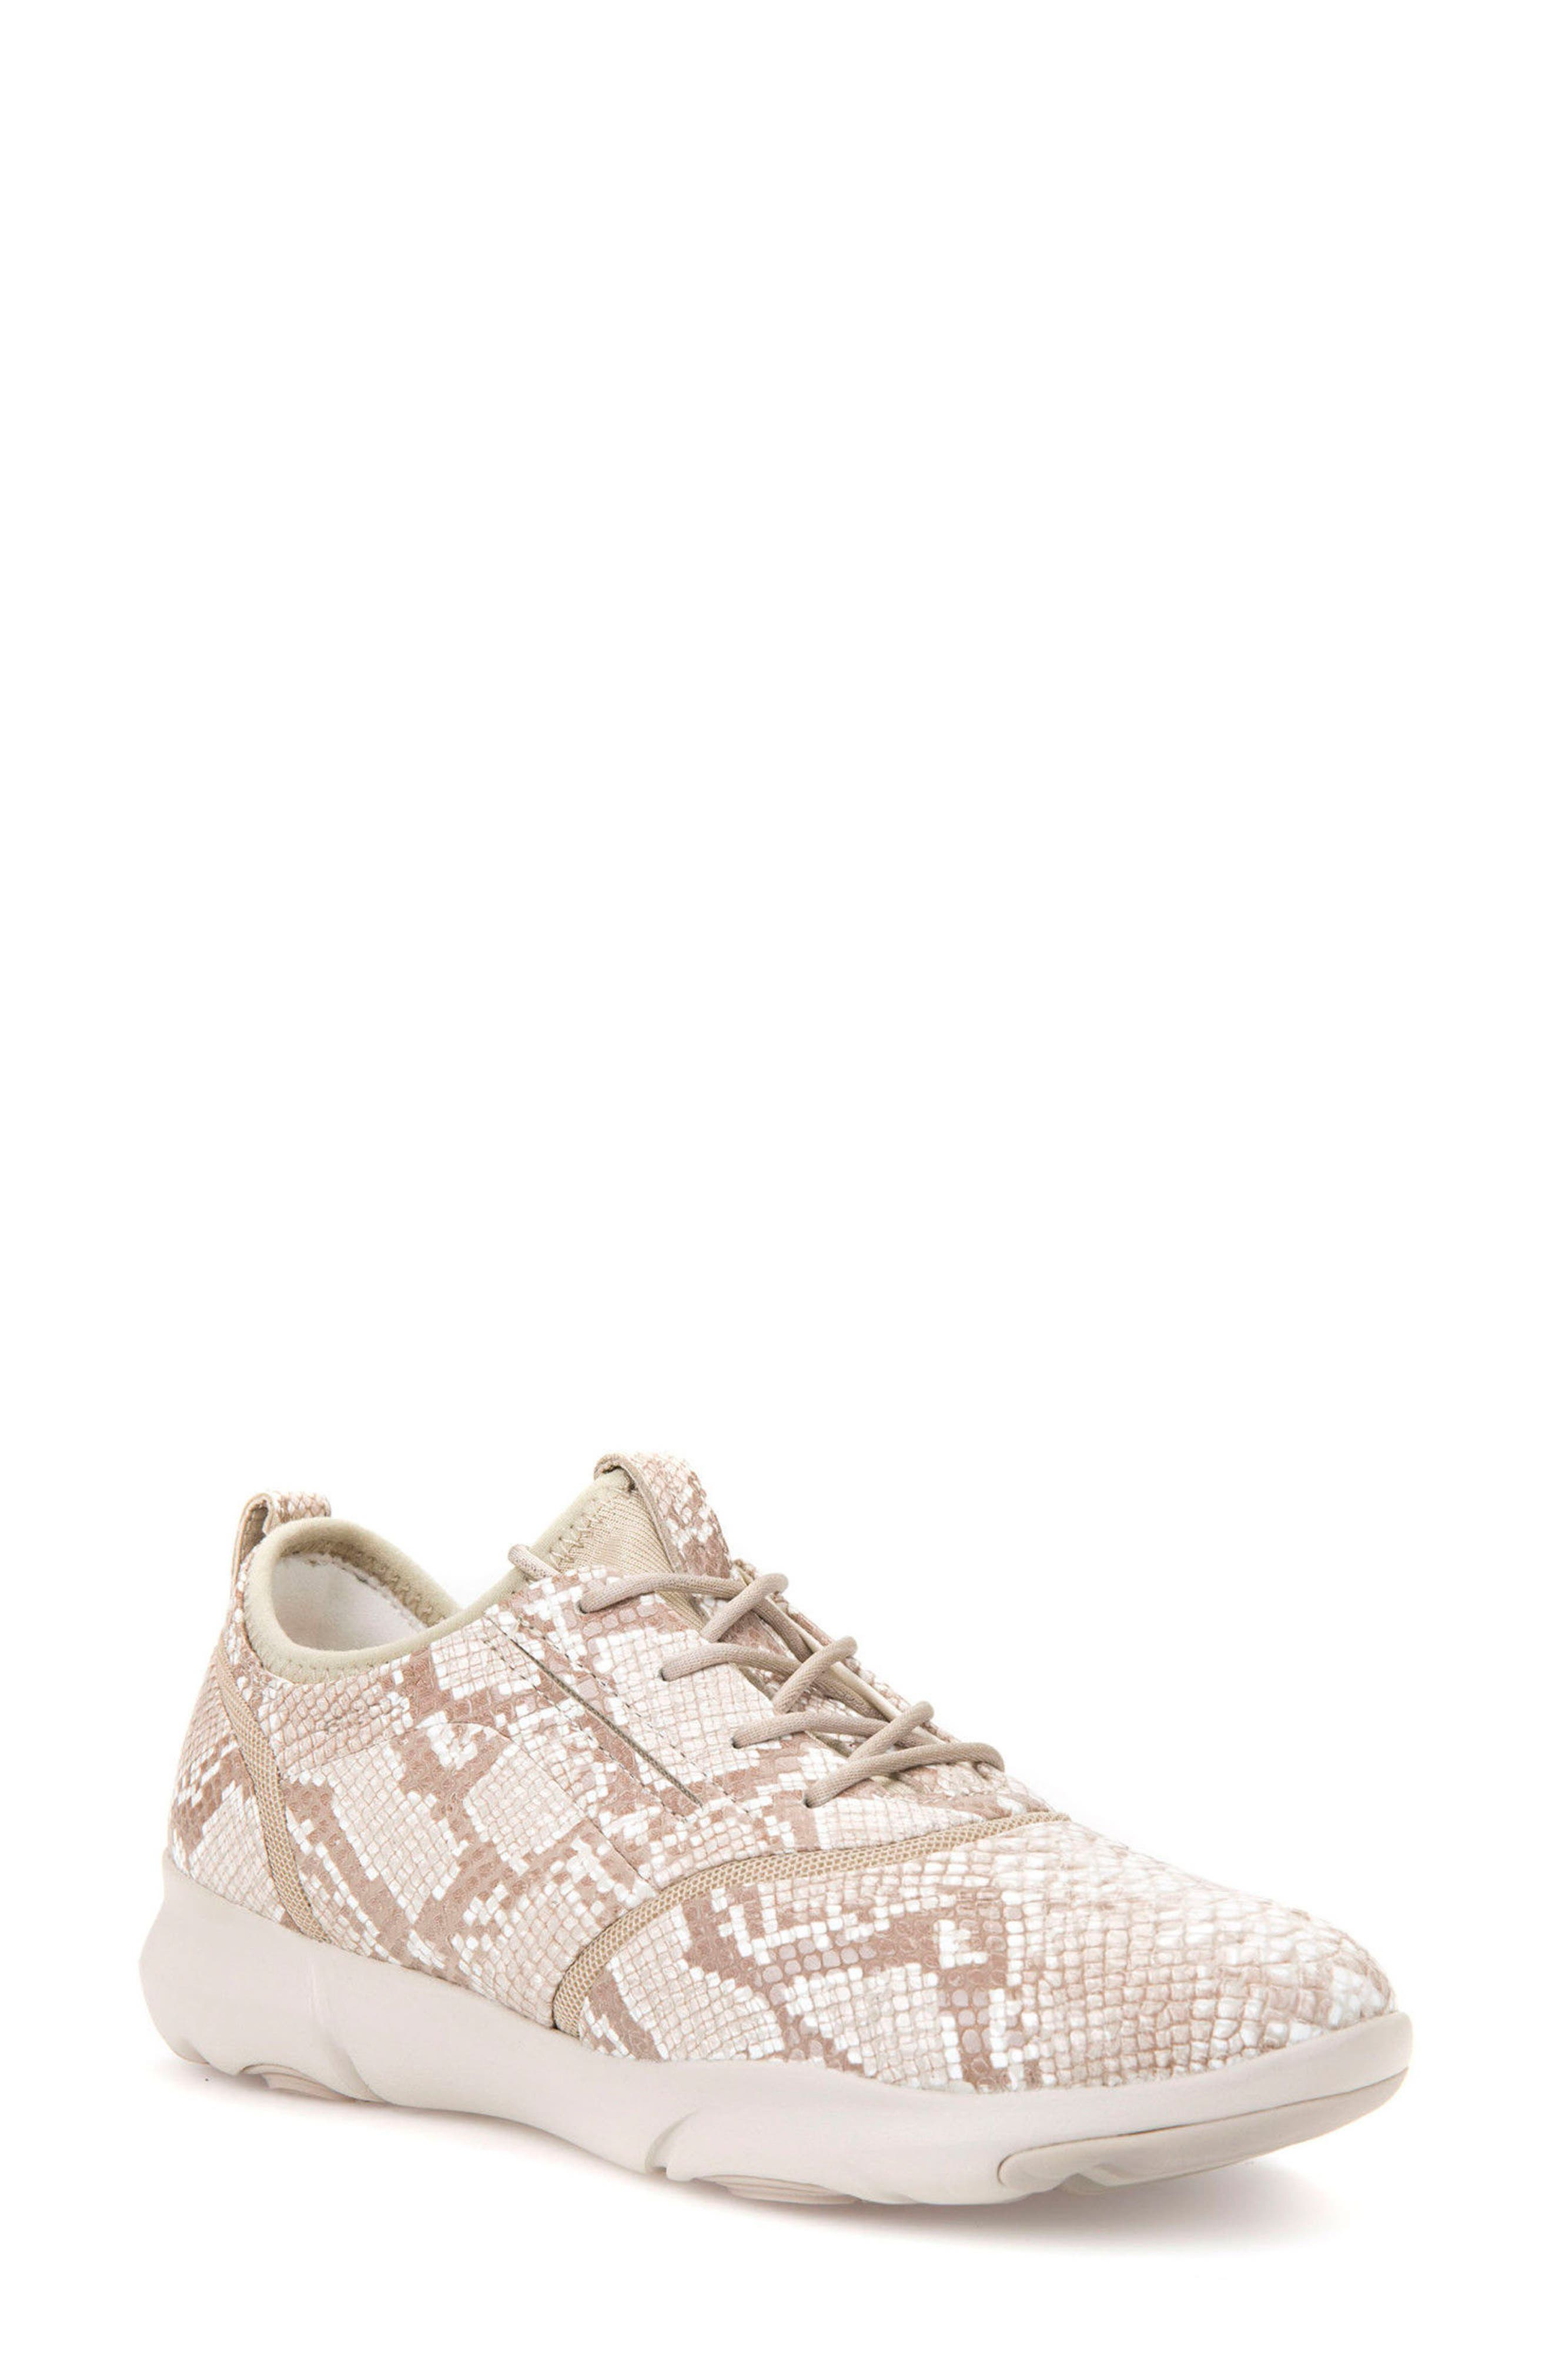 Nebula S 1 Python Embossed Sneaker,                             Main thumbnail 1, color,                             Beige Leather